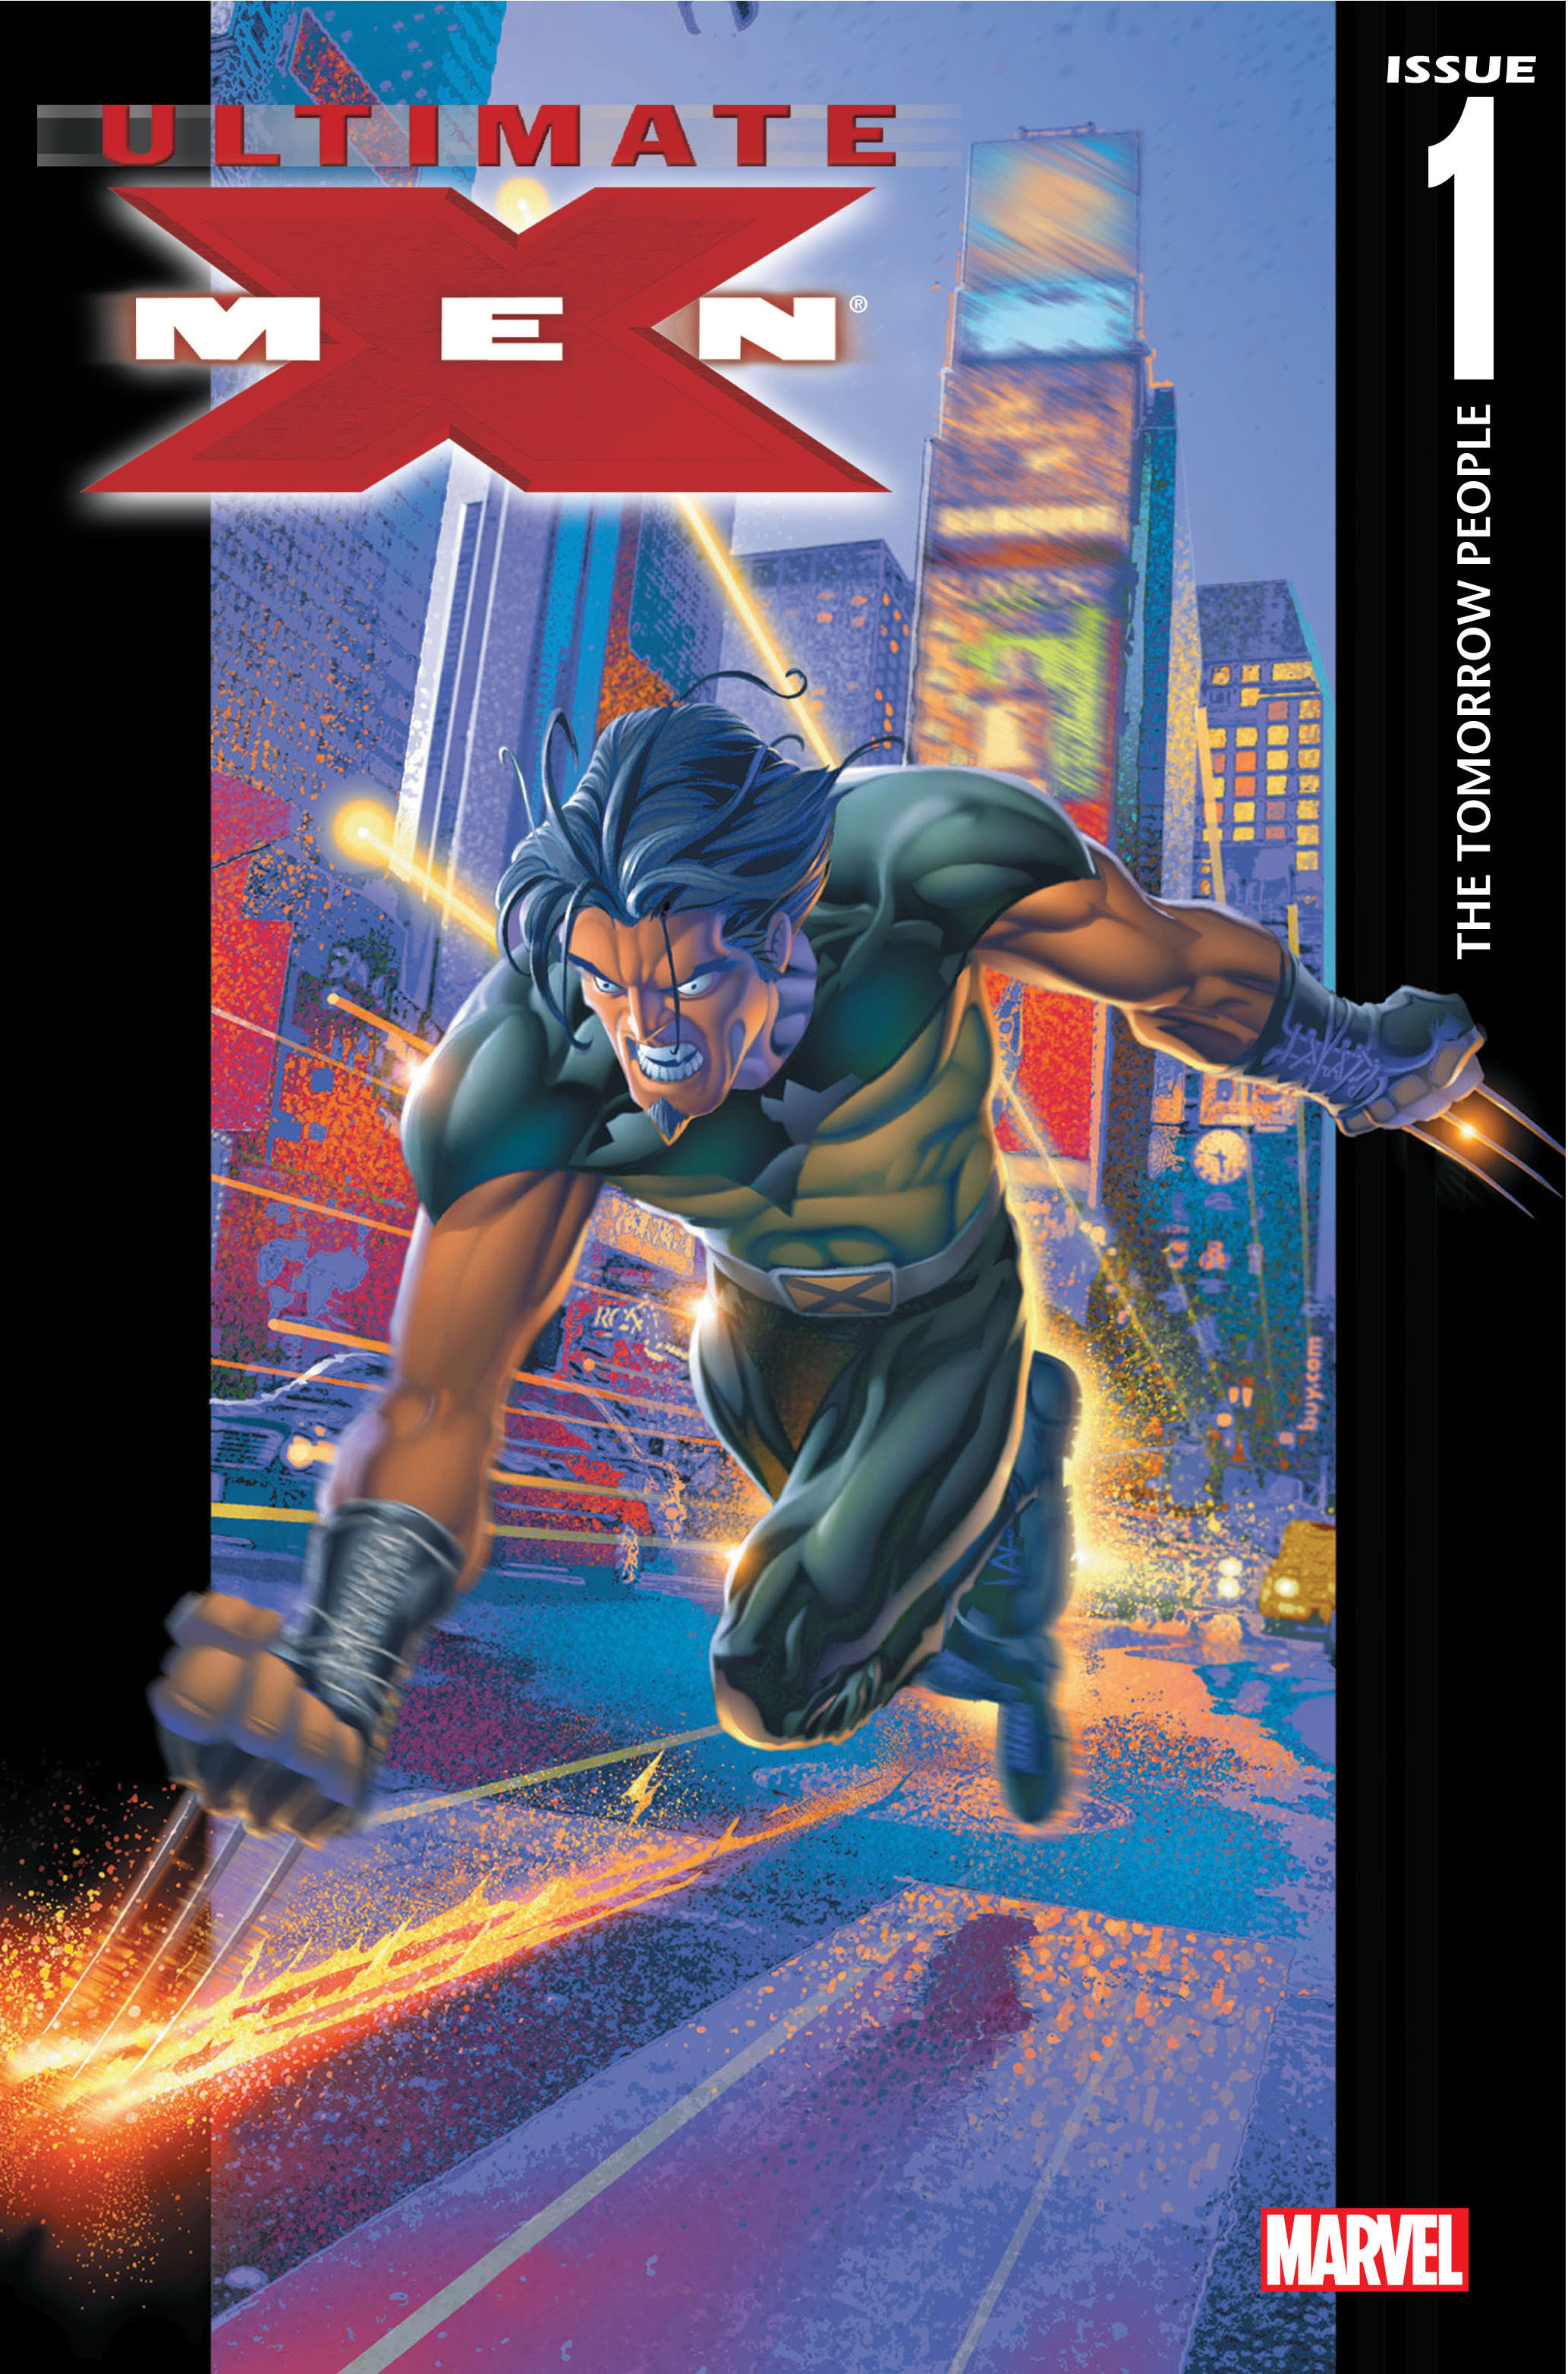 Read online Ultimate X-Men comic -  Issue #1 - 1